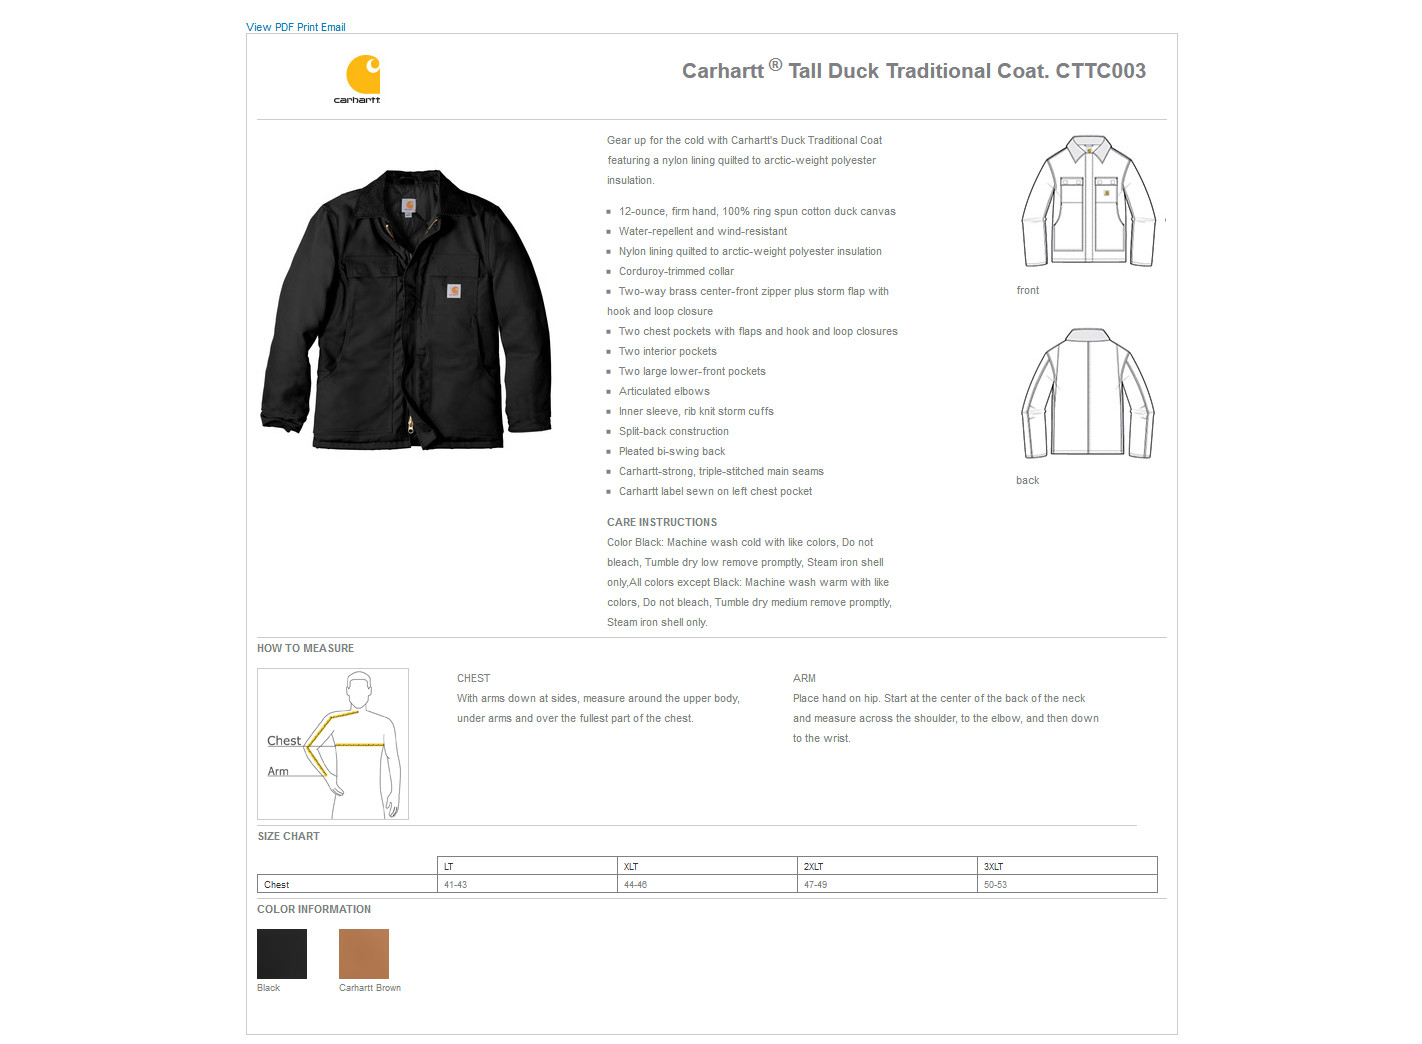 2a530fa999 Carhartt® CTTC003 - Tall Duck Traditional Coat $129.55 - Men's Outerwear